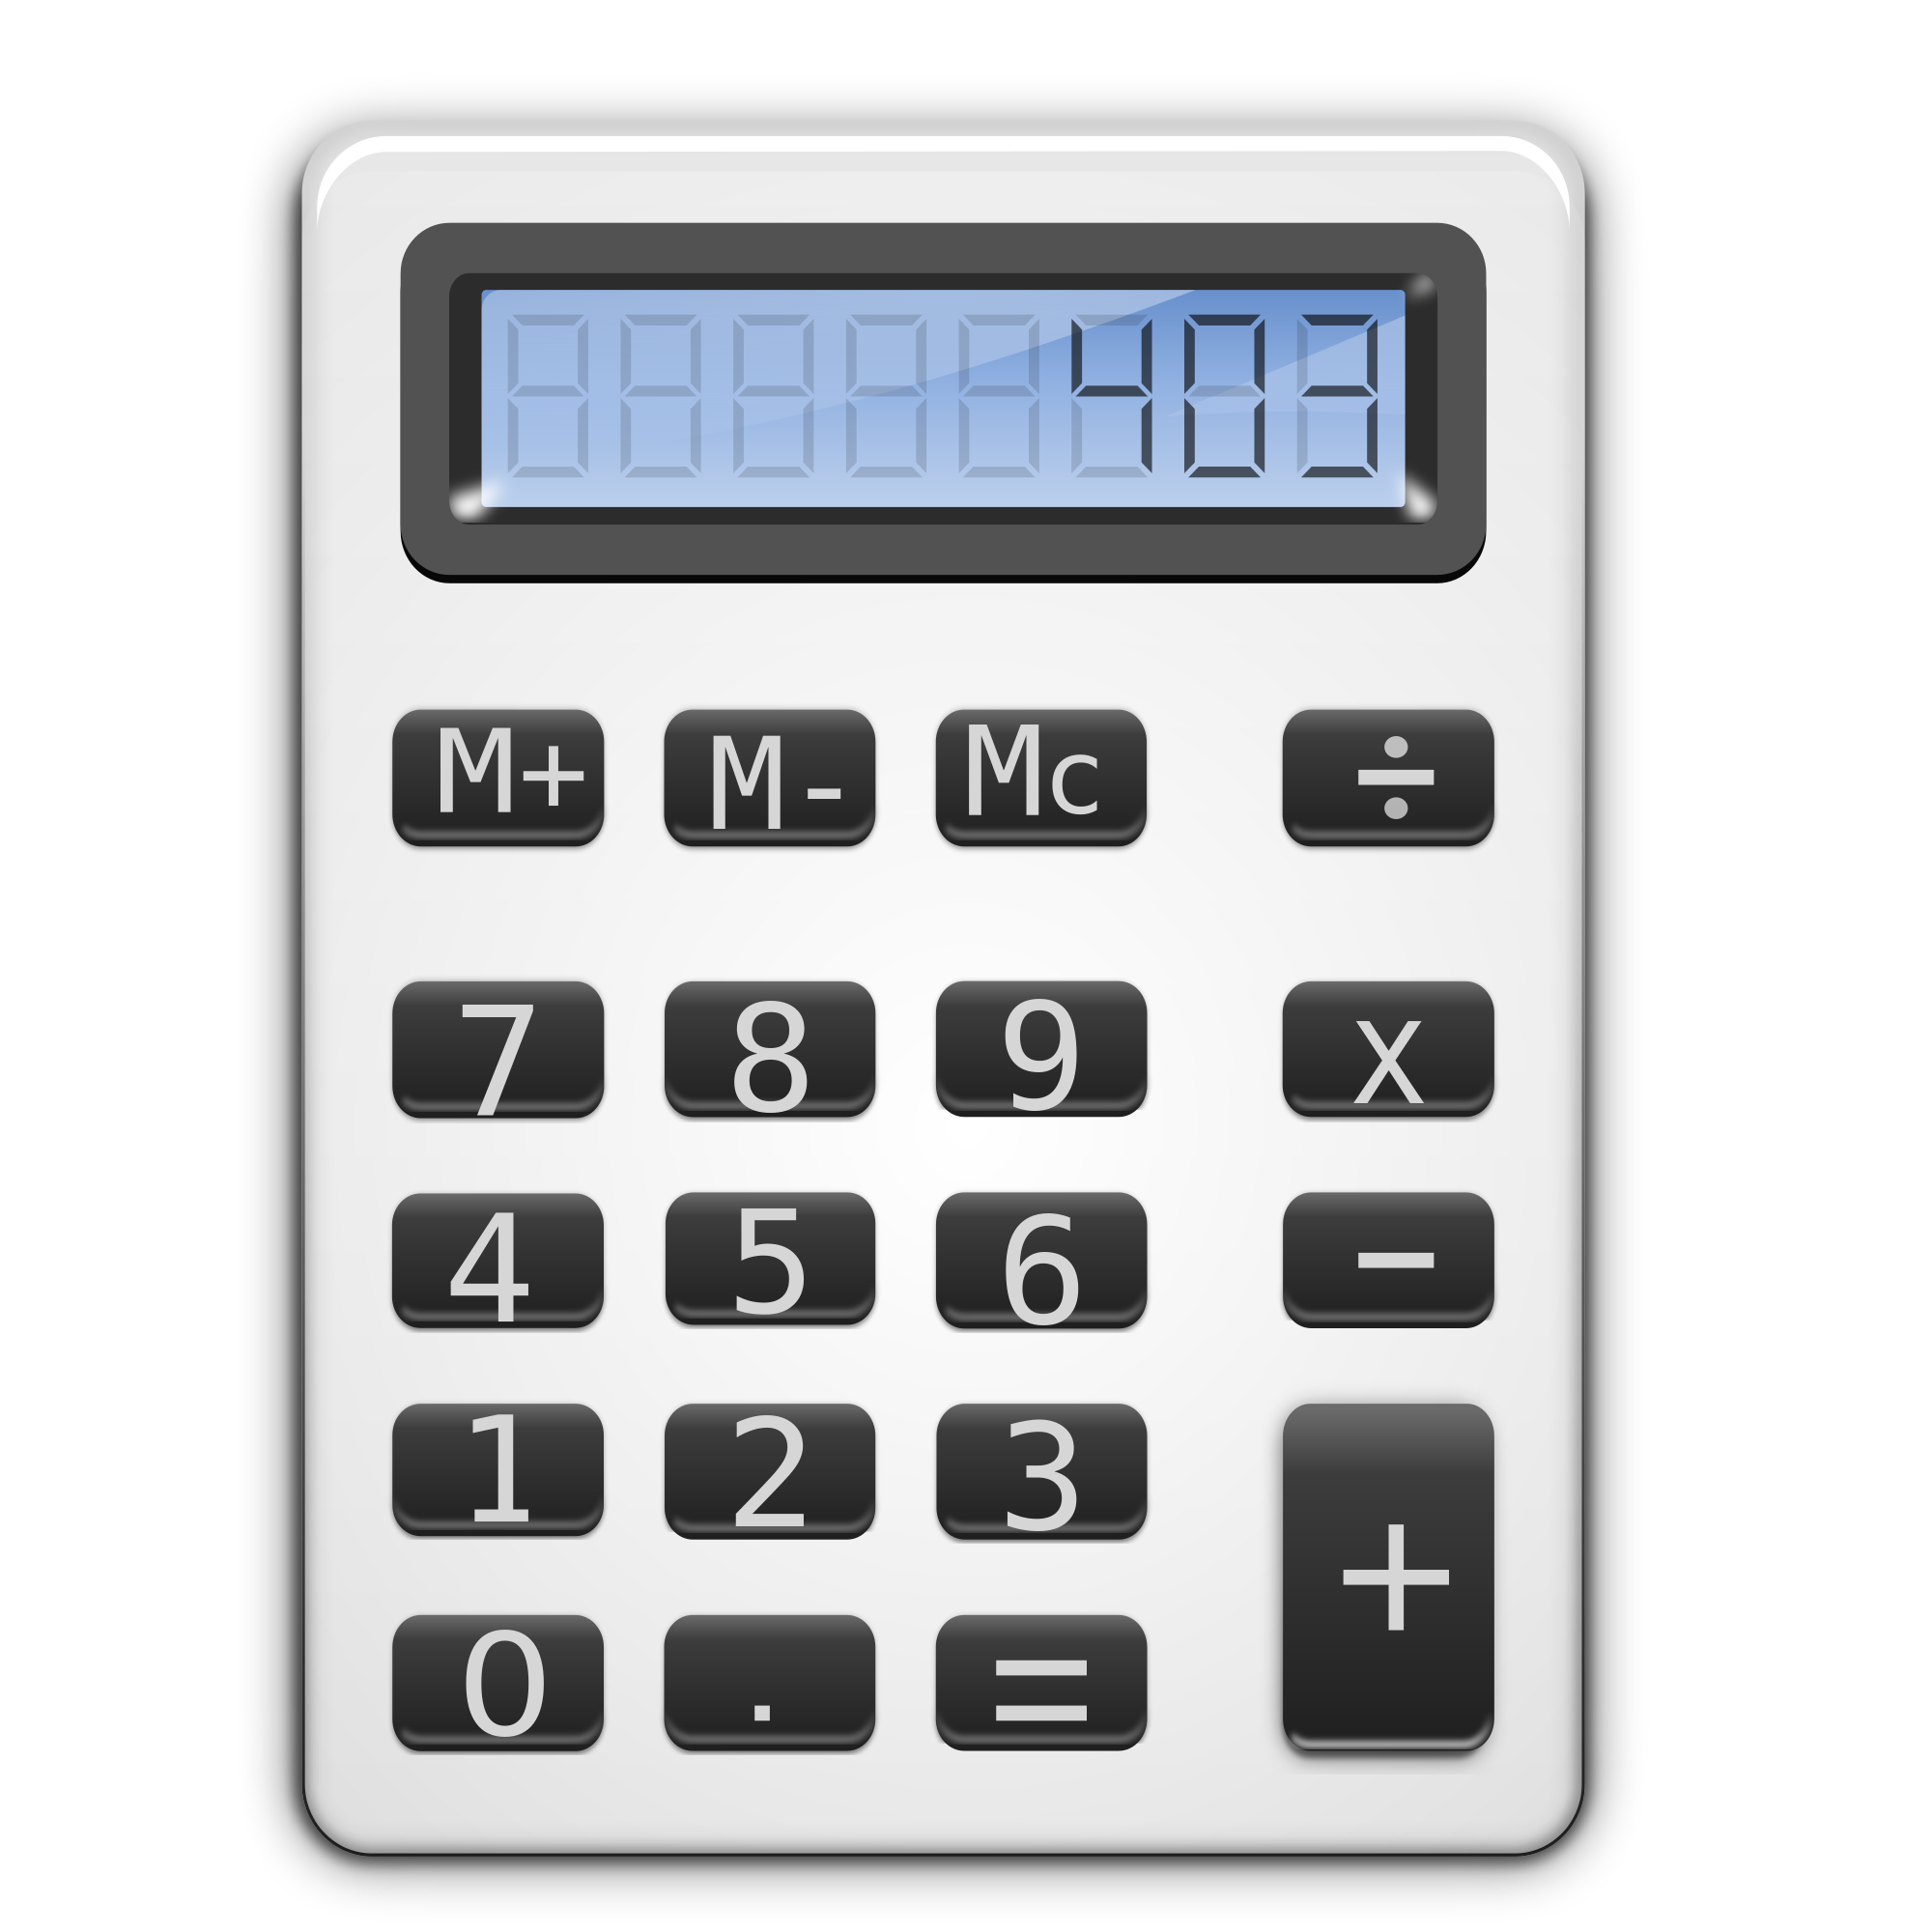 Calculator clipart transparent background. Icon web icons png